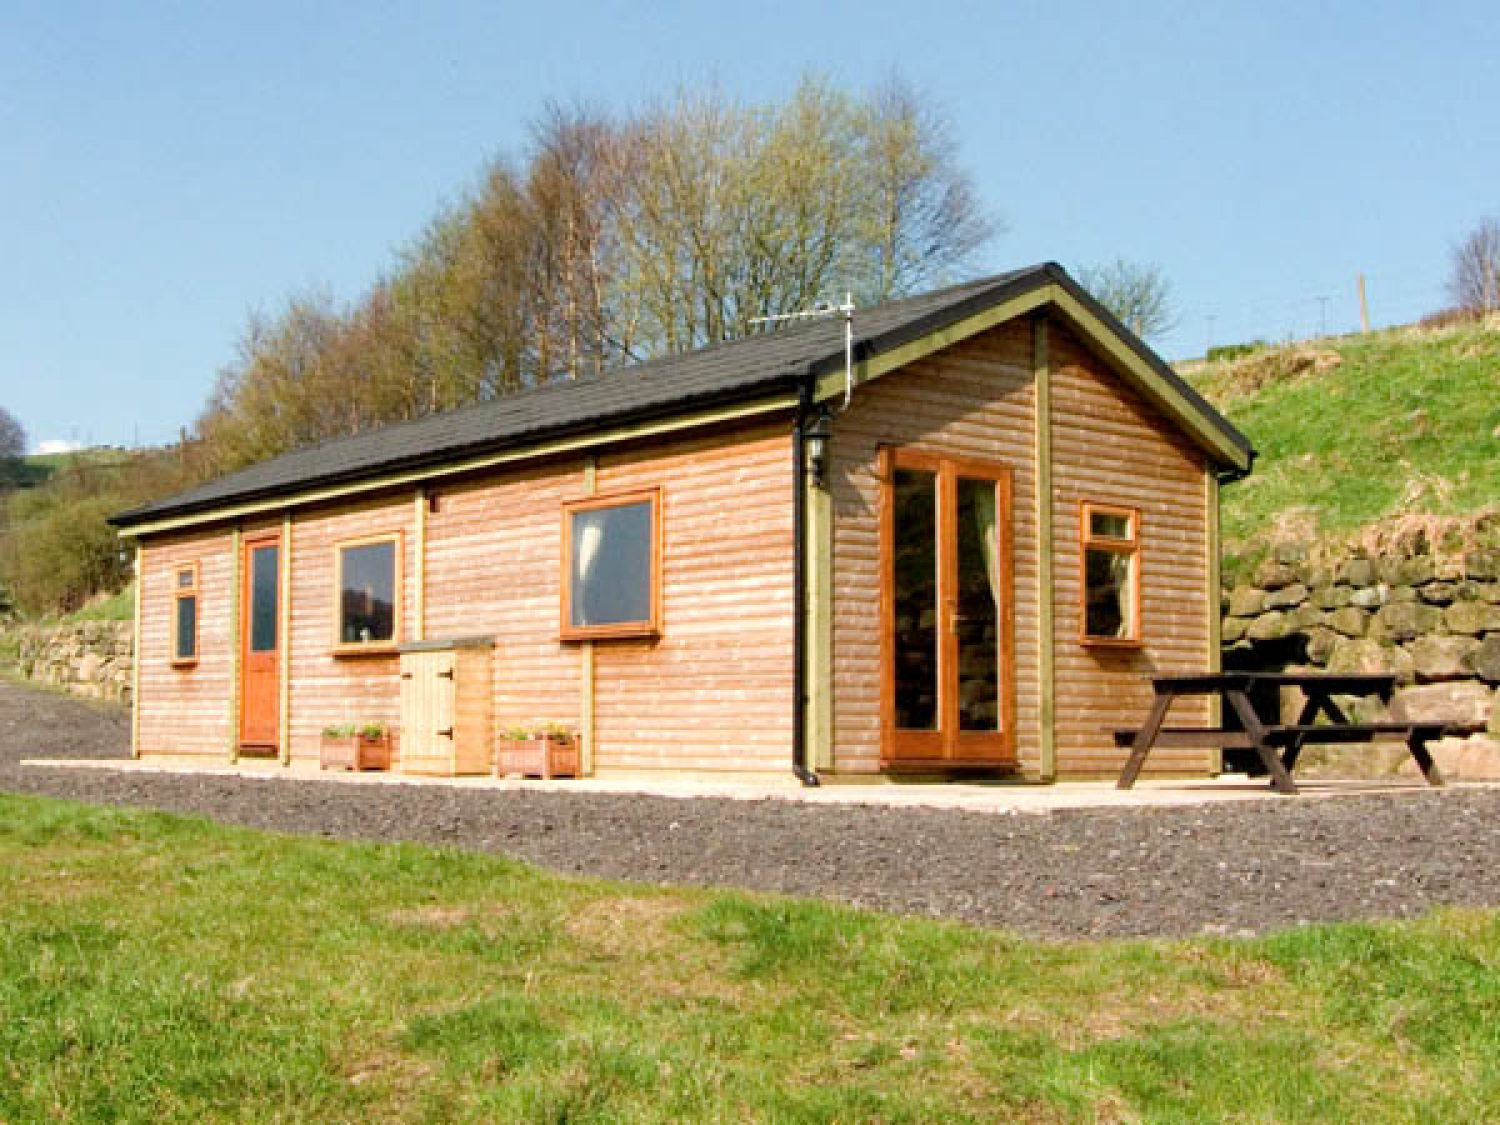 Lower Lumb Lodge, Hebden Bridge,North Yorkshire,England